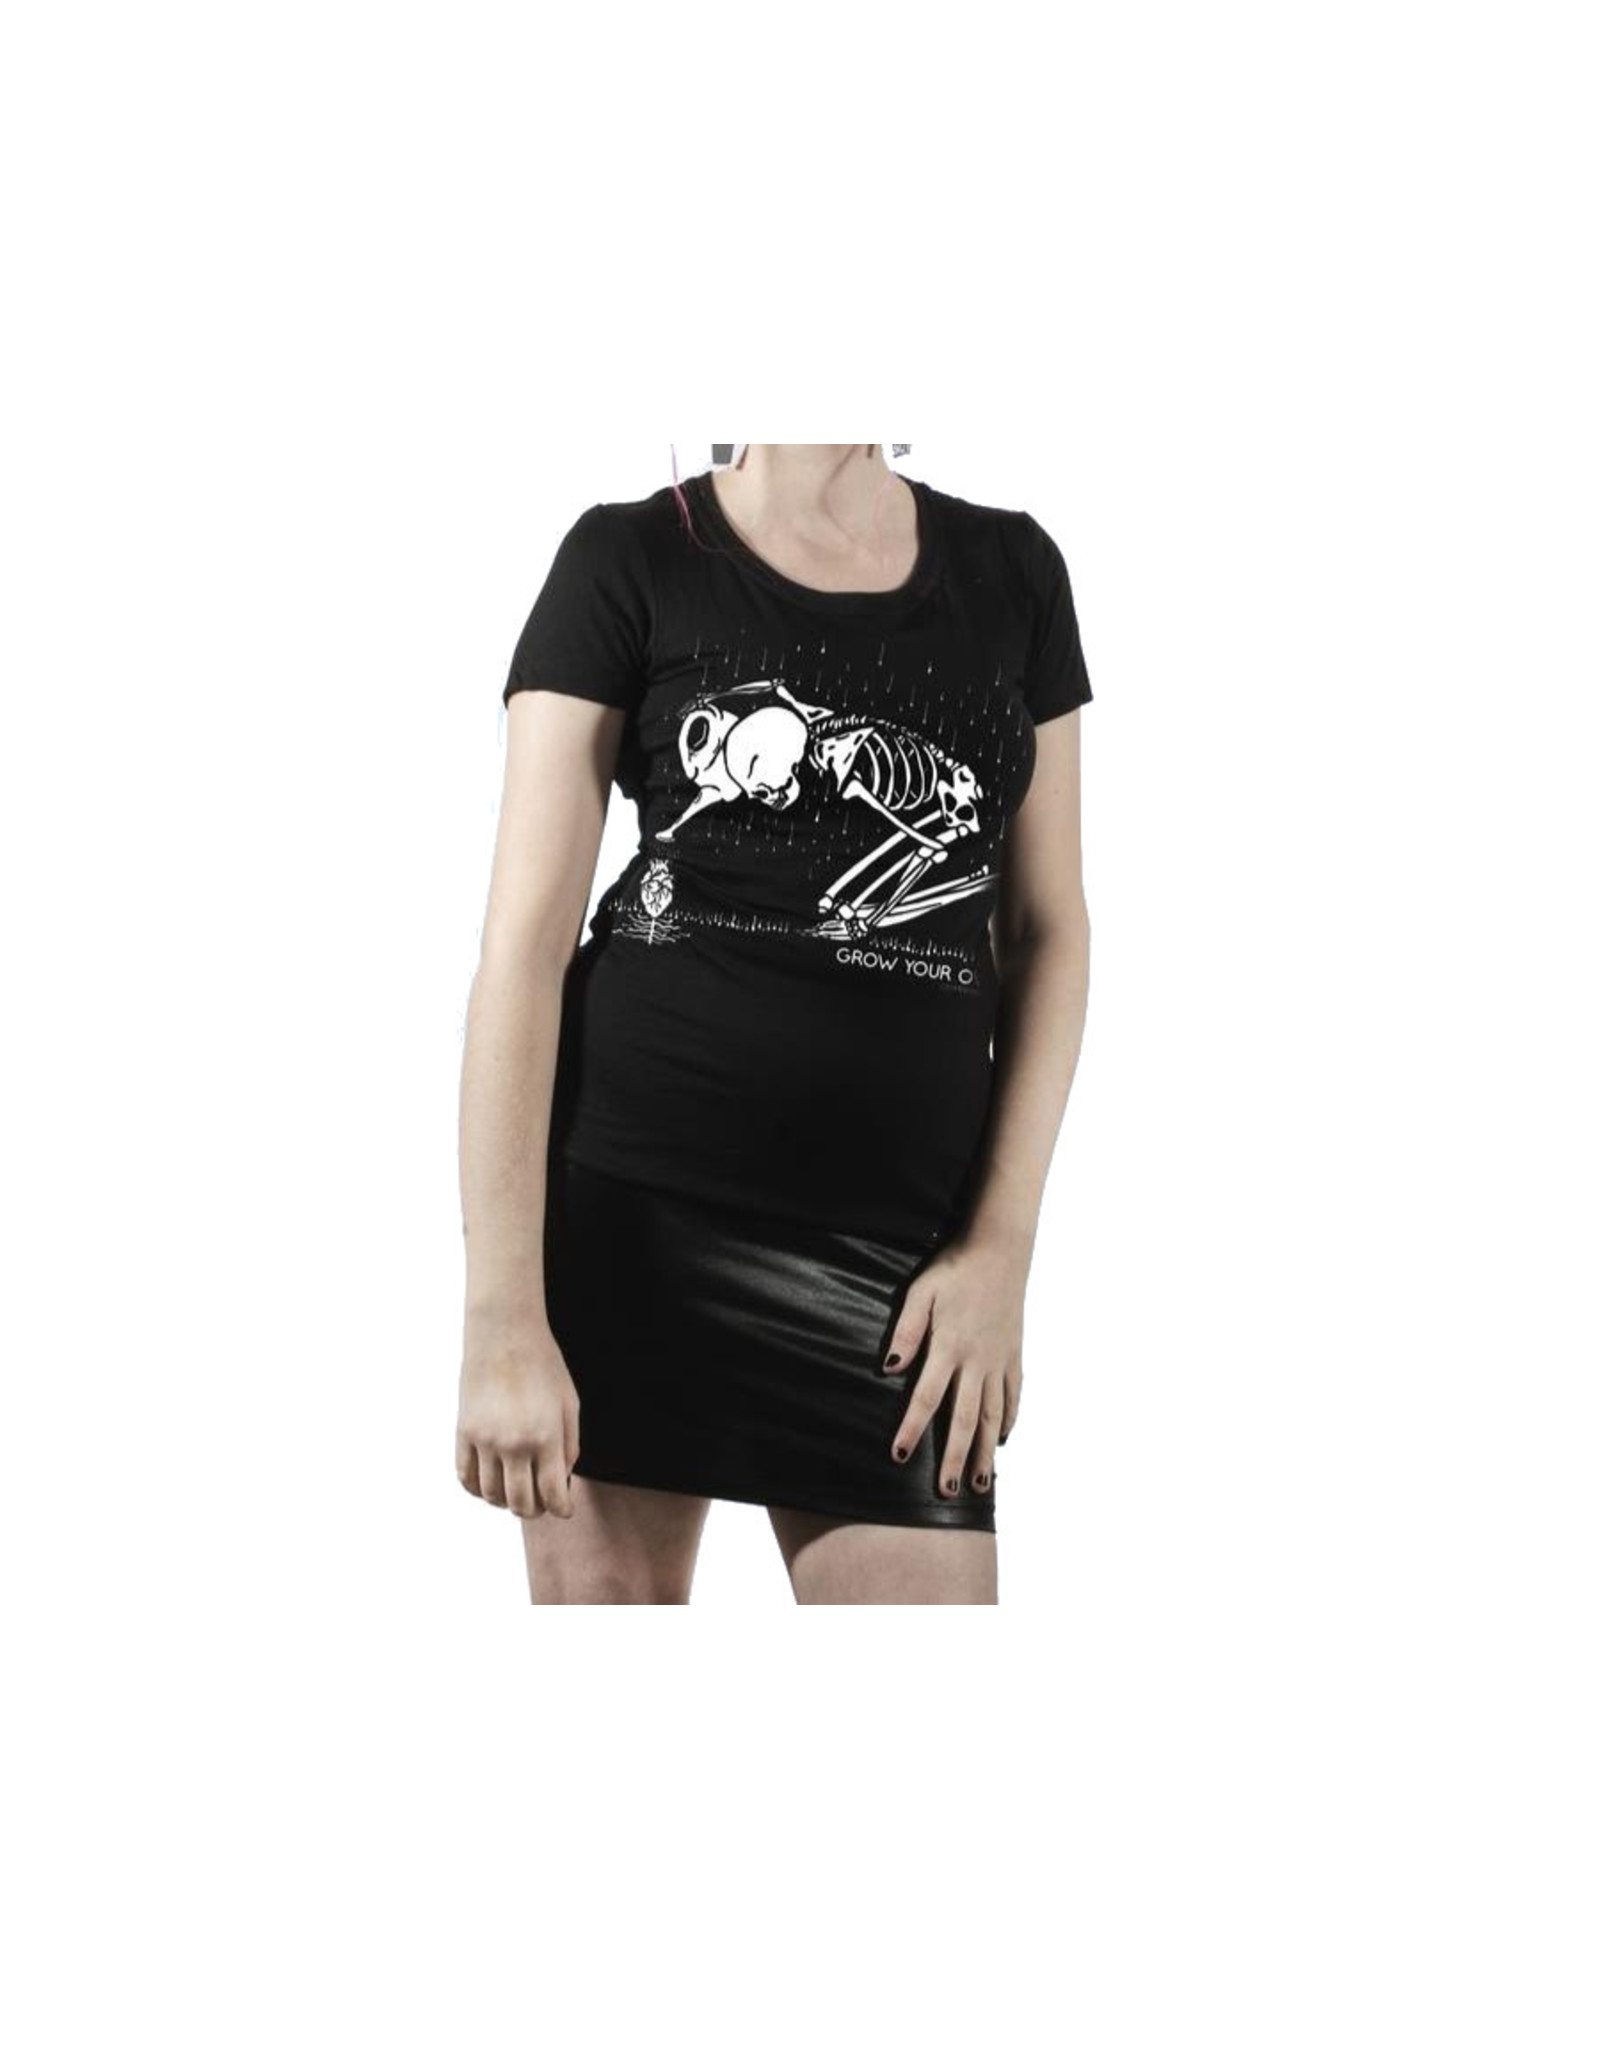 TOO FAST - Grow Your Own Skeleton Love Babydoll T-Shirt